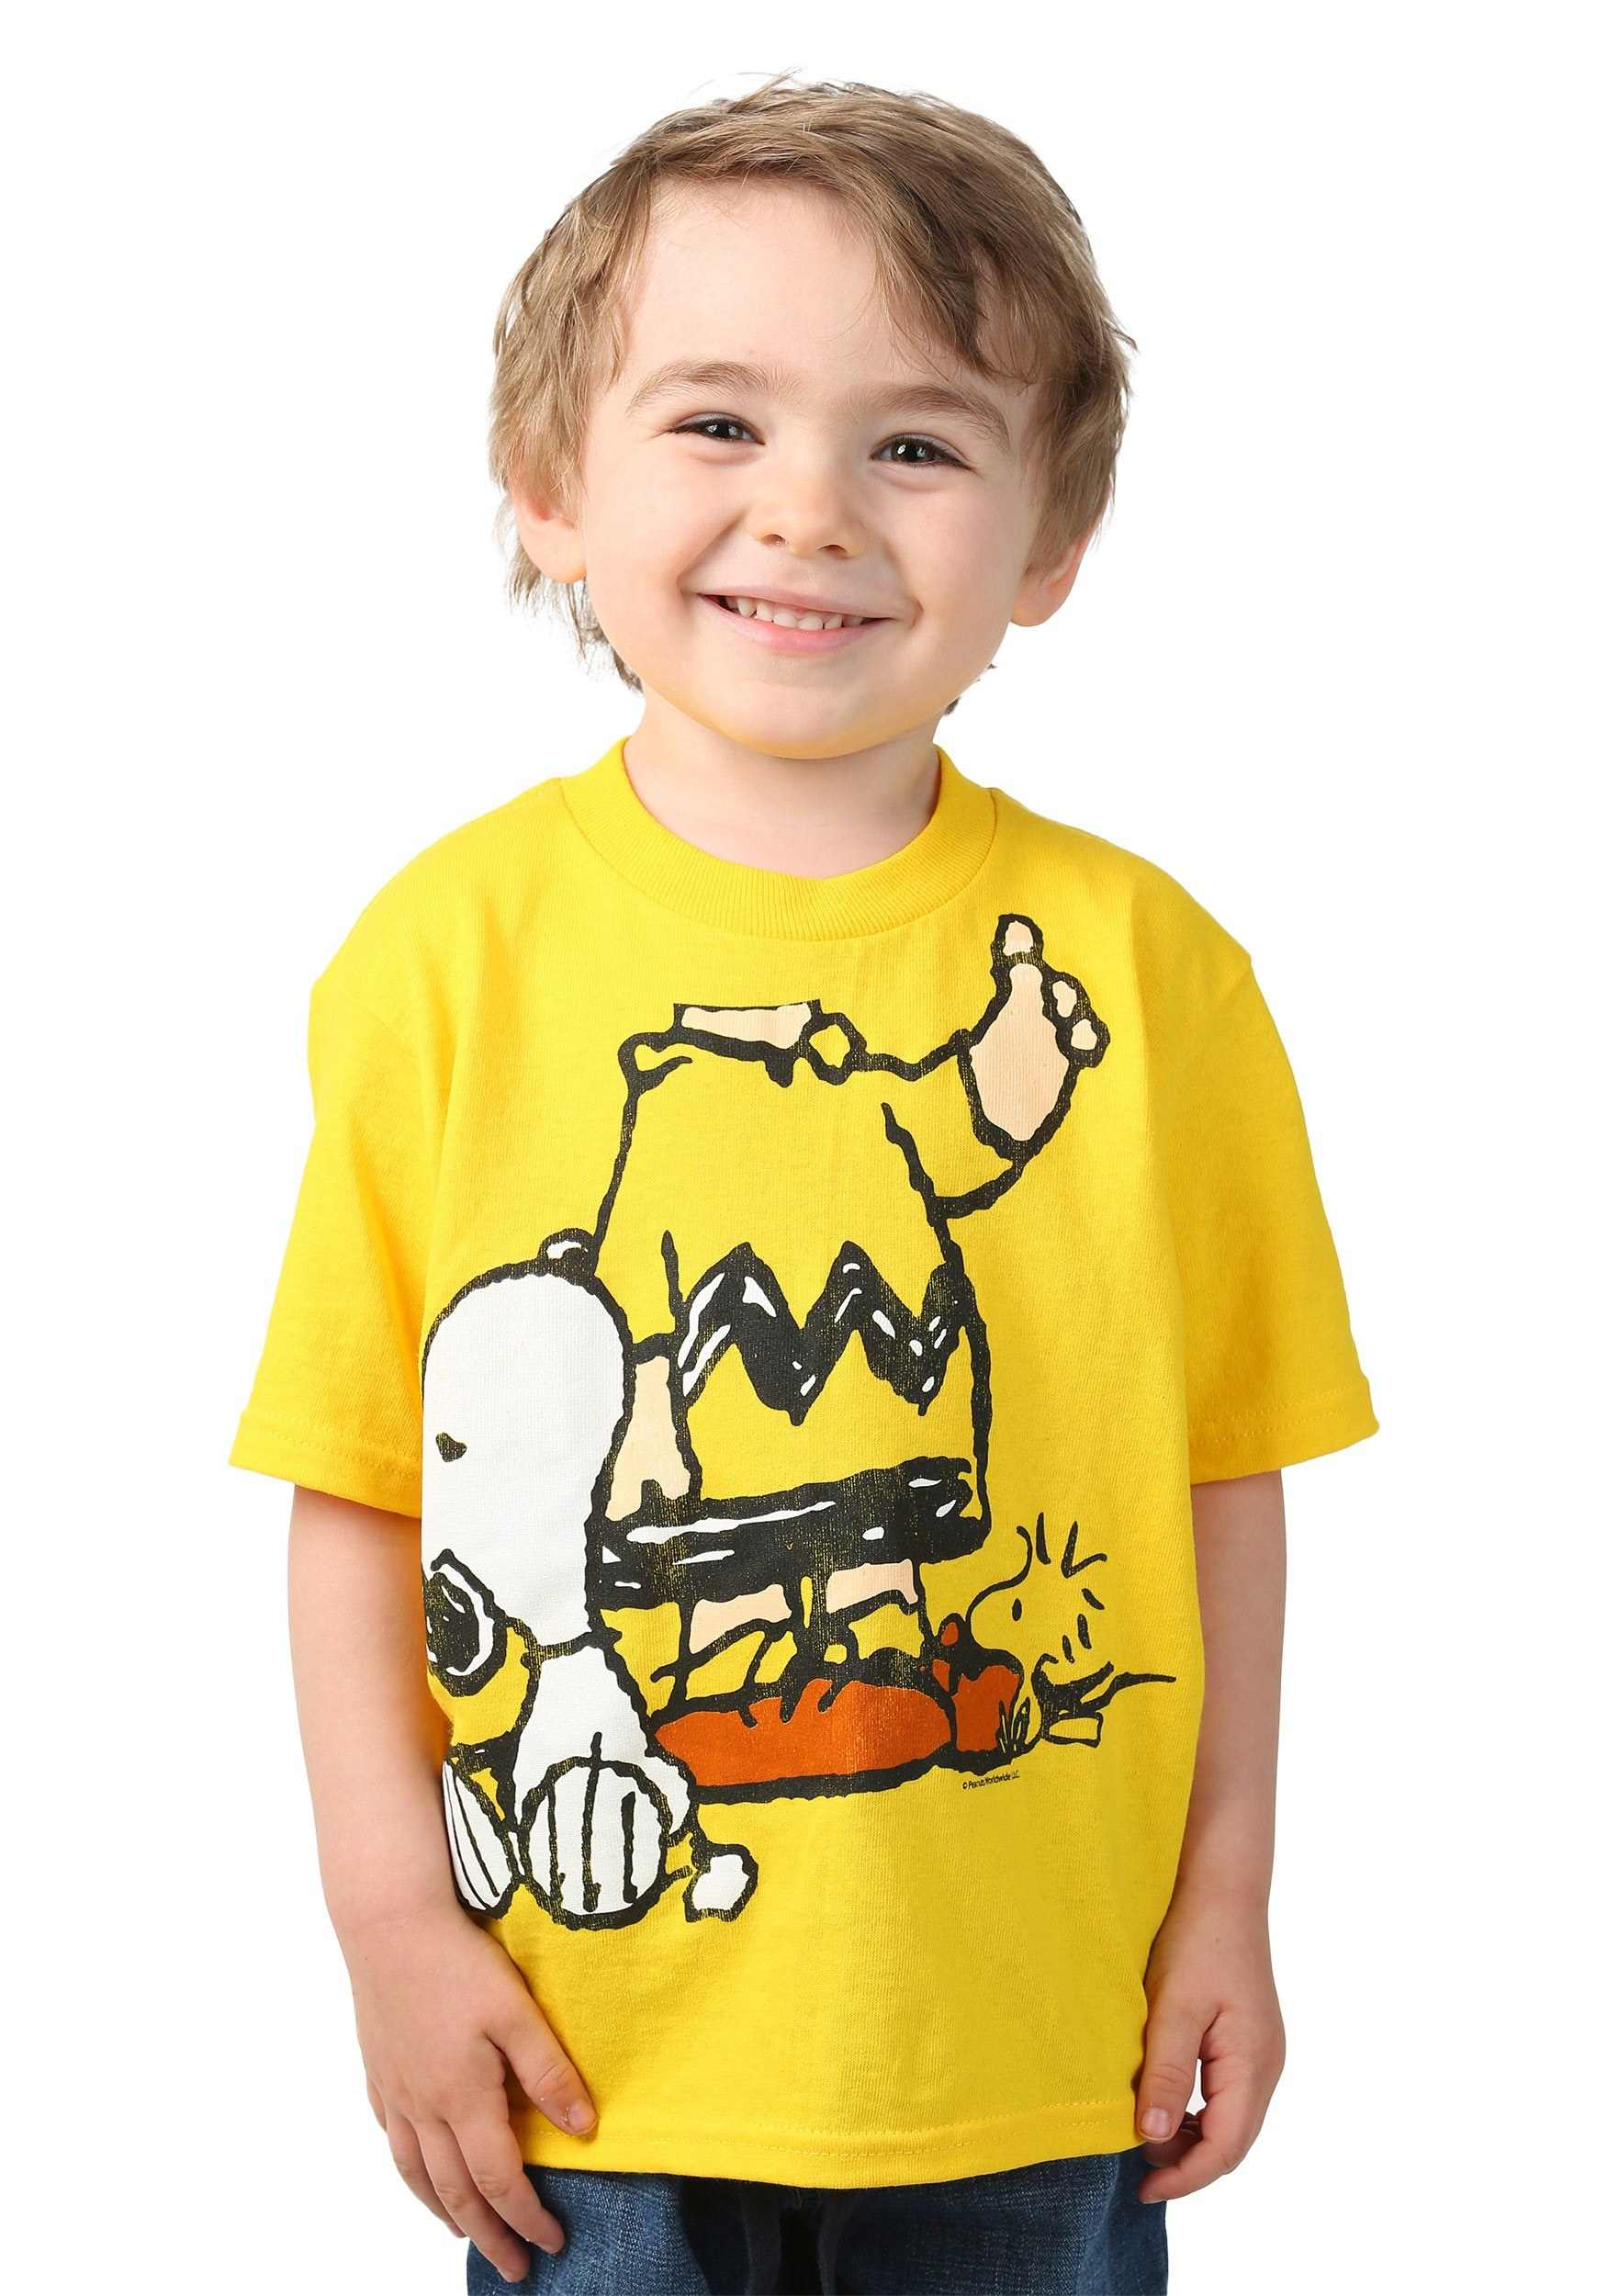 peanuts i am chuck with snoopy t-shirt costume for toddlers